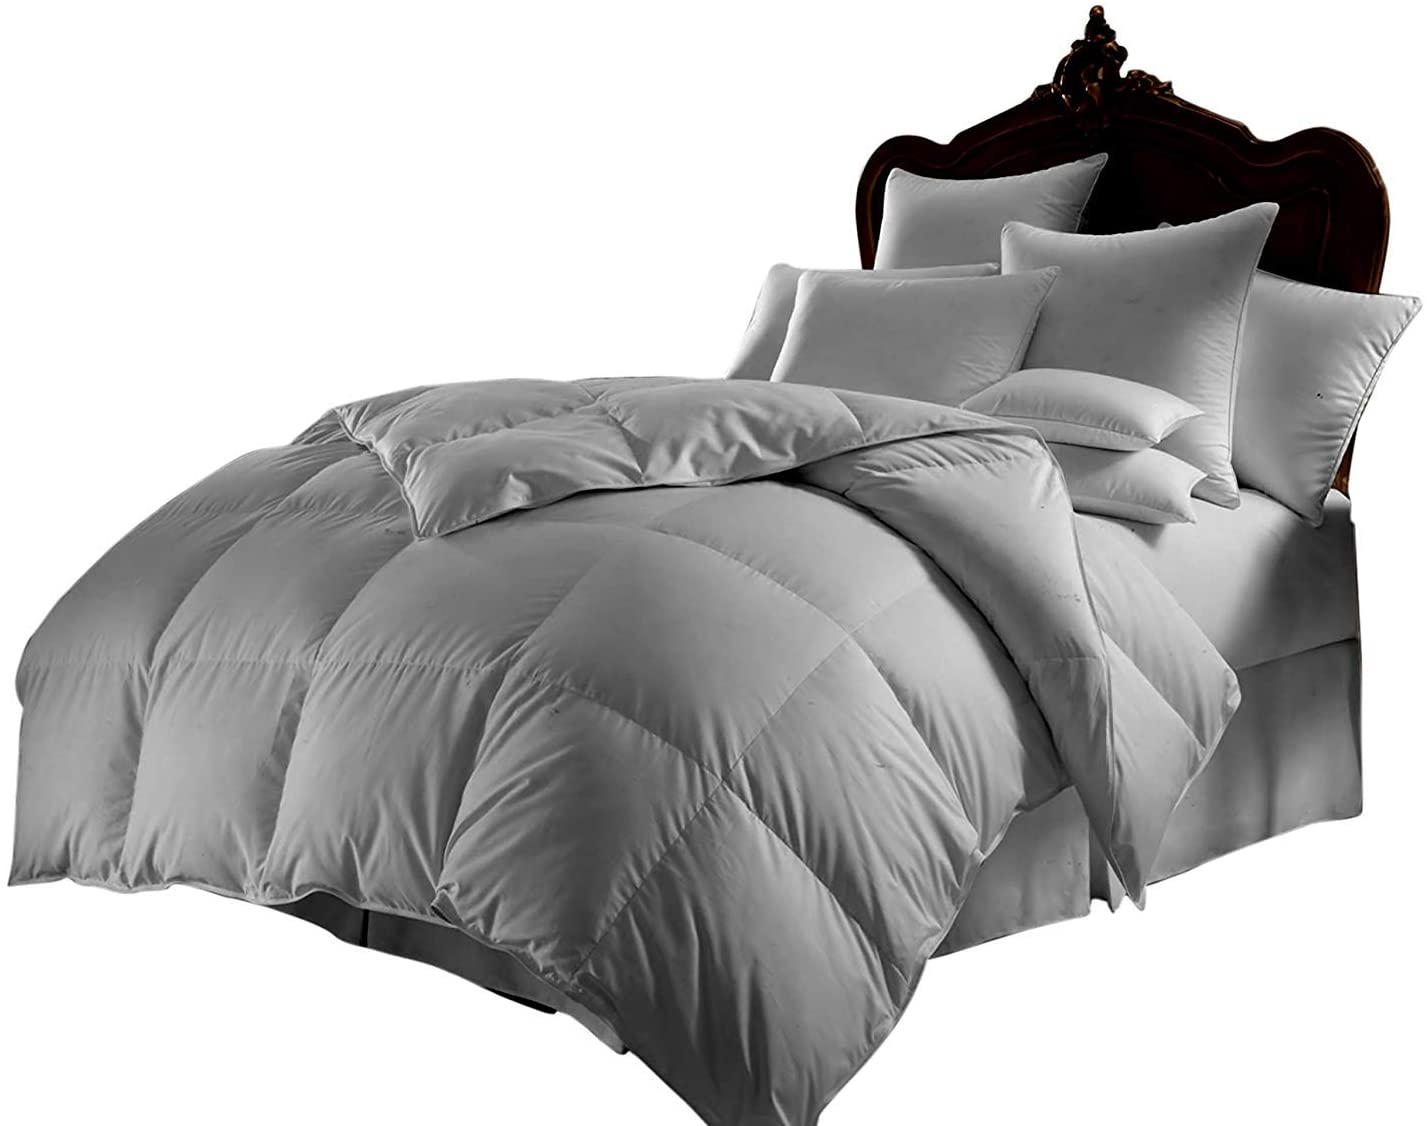 All Season Luxurious 800 Series,Luxury Goose Down Alternative Comforter, Queen Size - Quilt 3 Pc Comforter -100% Egyptian Cotton Comforter Set, Hotel Quality 600 GSM,Silver Grey, (90